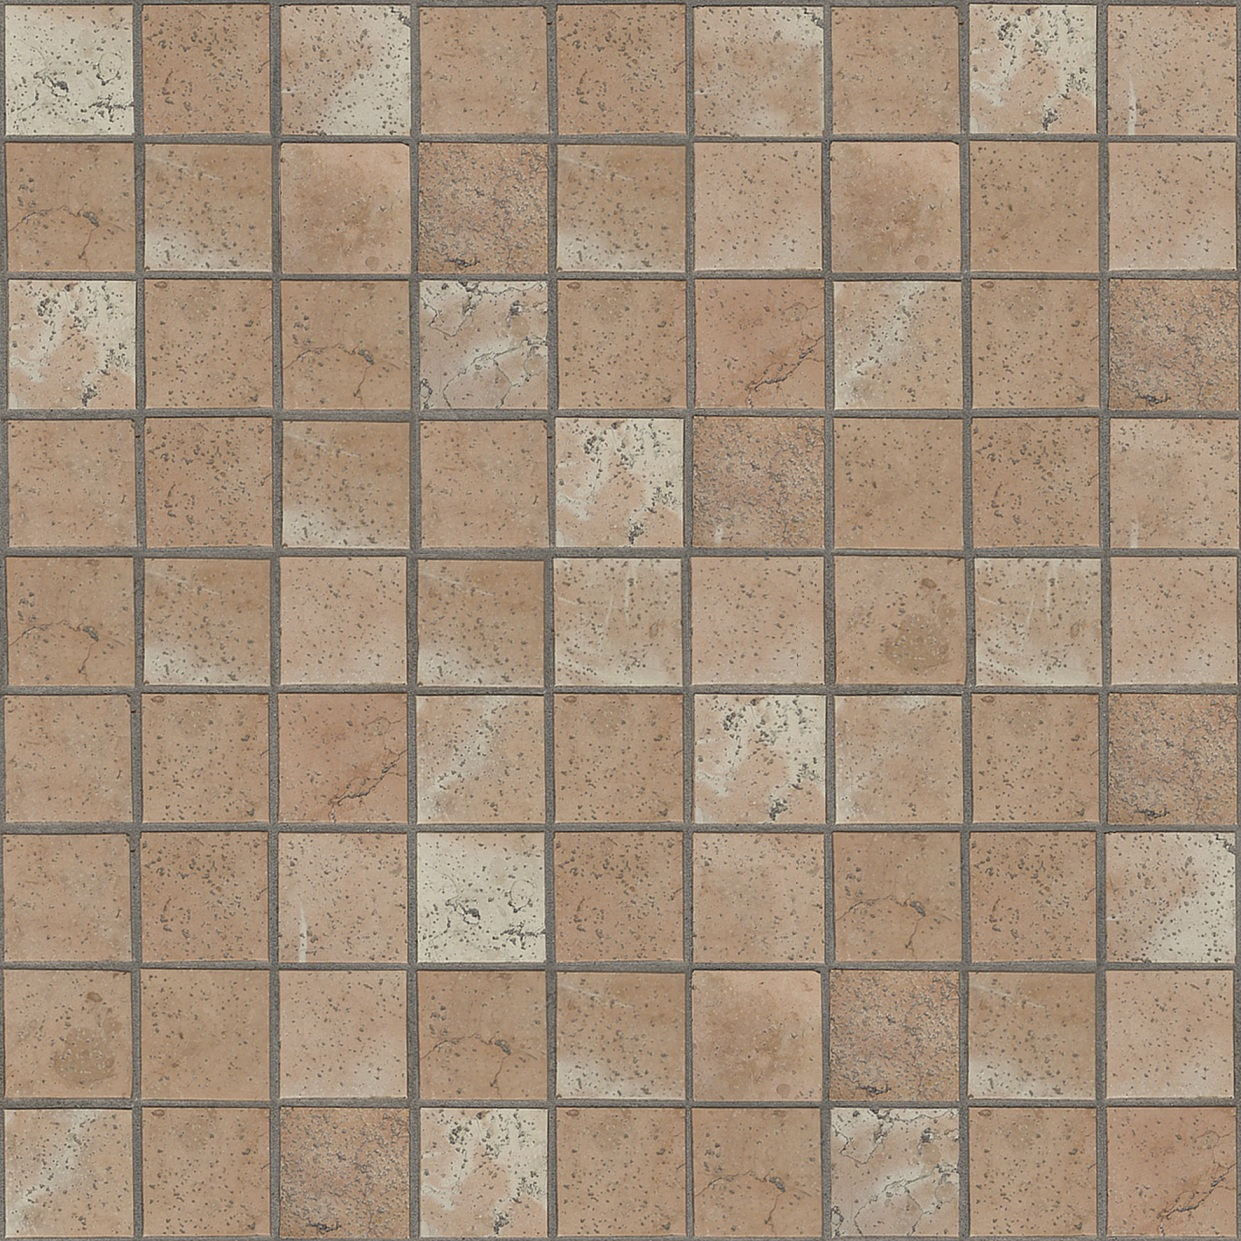 Kitchen tiles texture home design roosa for Exterior floor tiles texture